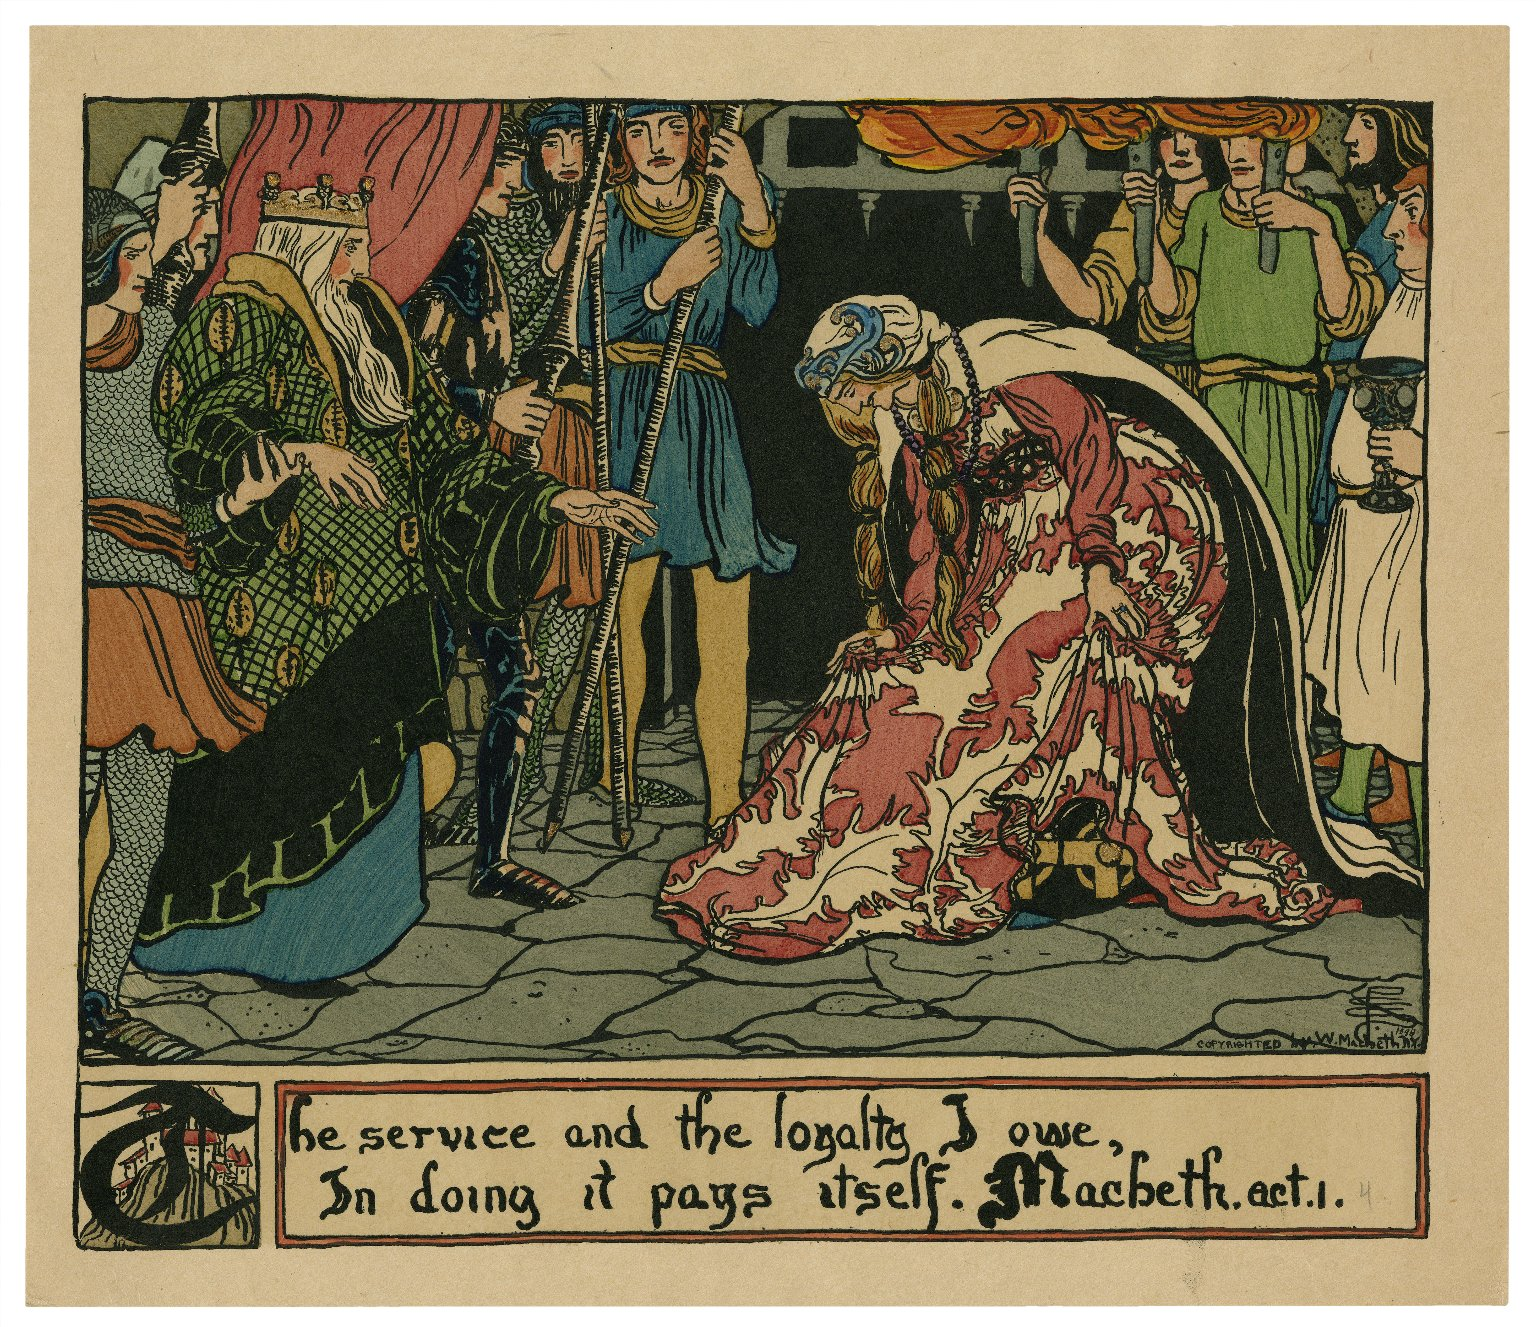 The service and the loyalty I owe, in doing it pays itself, Macbeth, act 1, [scene 4] [graphic] / P.C.S.